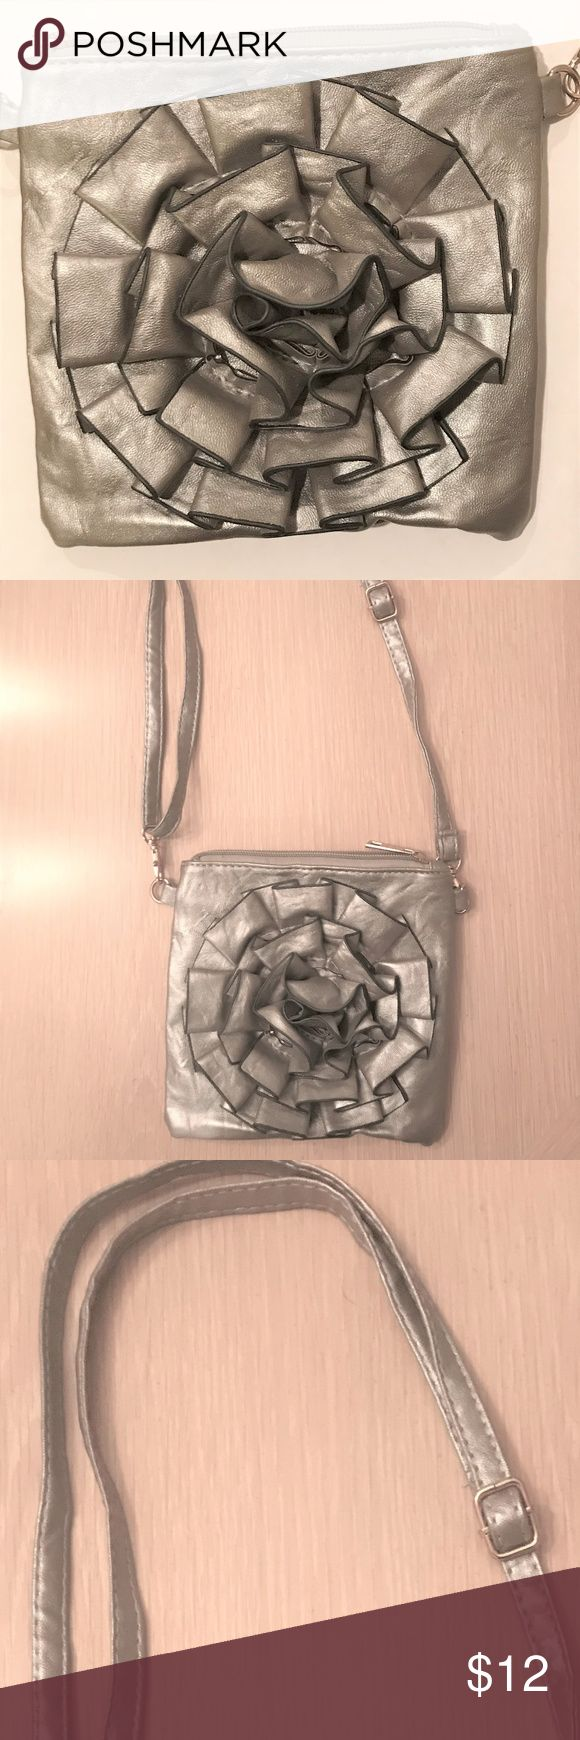 """SAX Silvery Grey Floral Shoulder Bag This is a floral shoulder bag with adjustable strap. It has a silvery grey color. It has inside and outside zippered pockets and a deep inside pocket. It is in mint condition except for the outside zipper which has a black spot, see last photo. It measures 7x7"""". SAX Bags Shoulder Bags"""